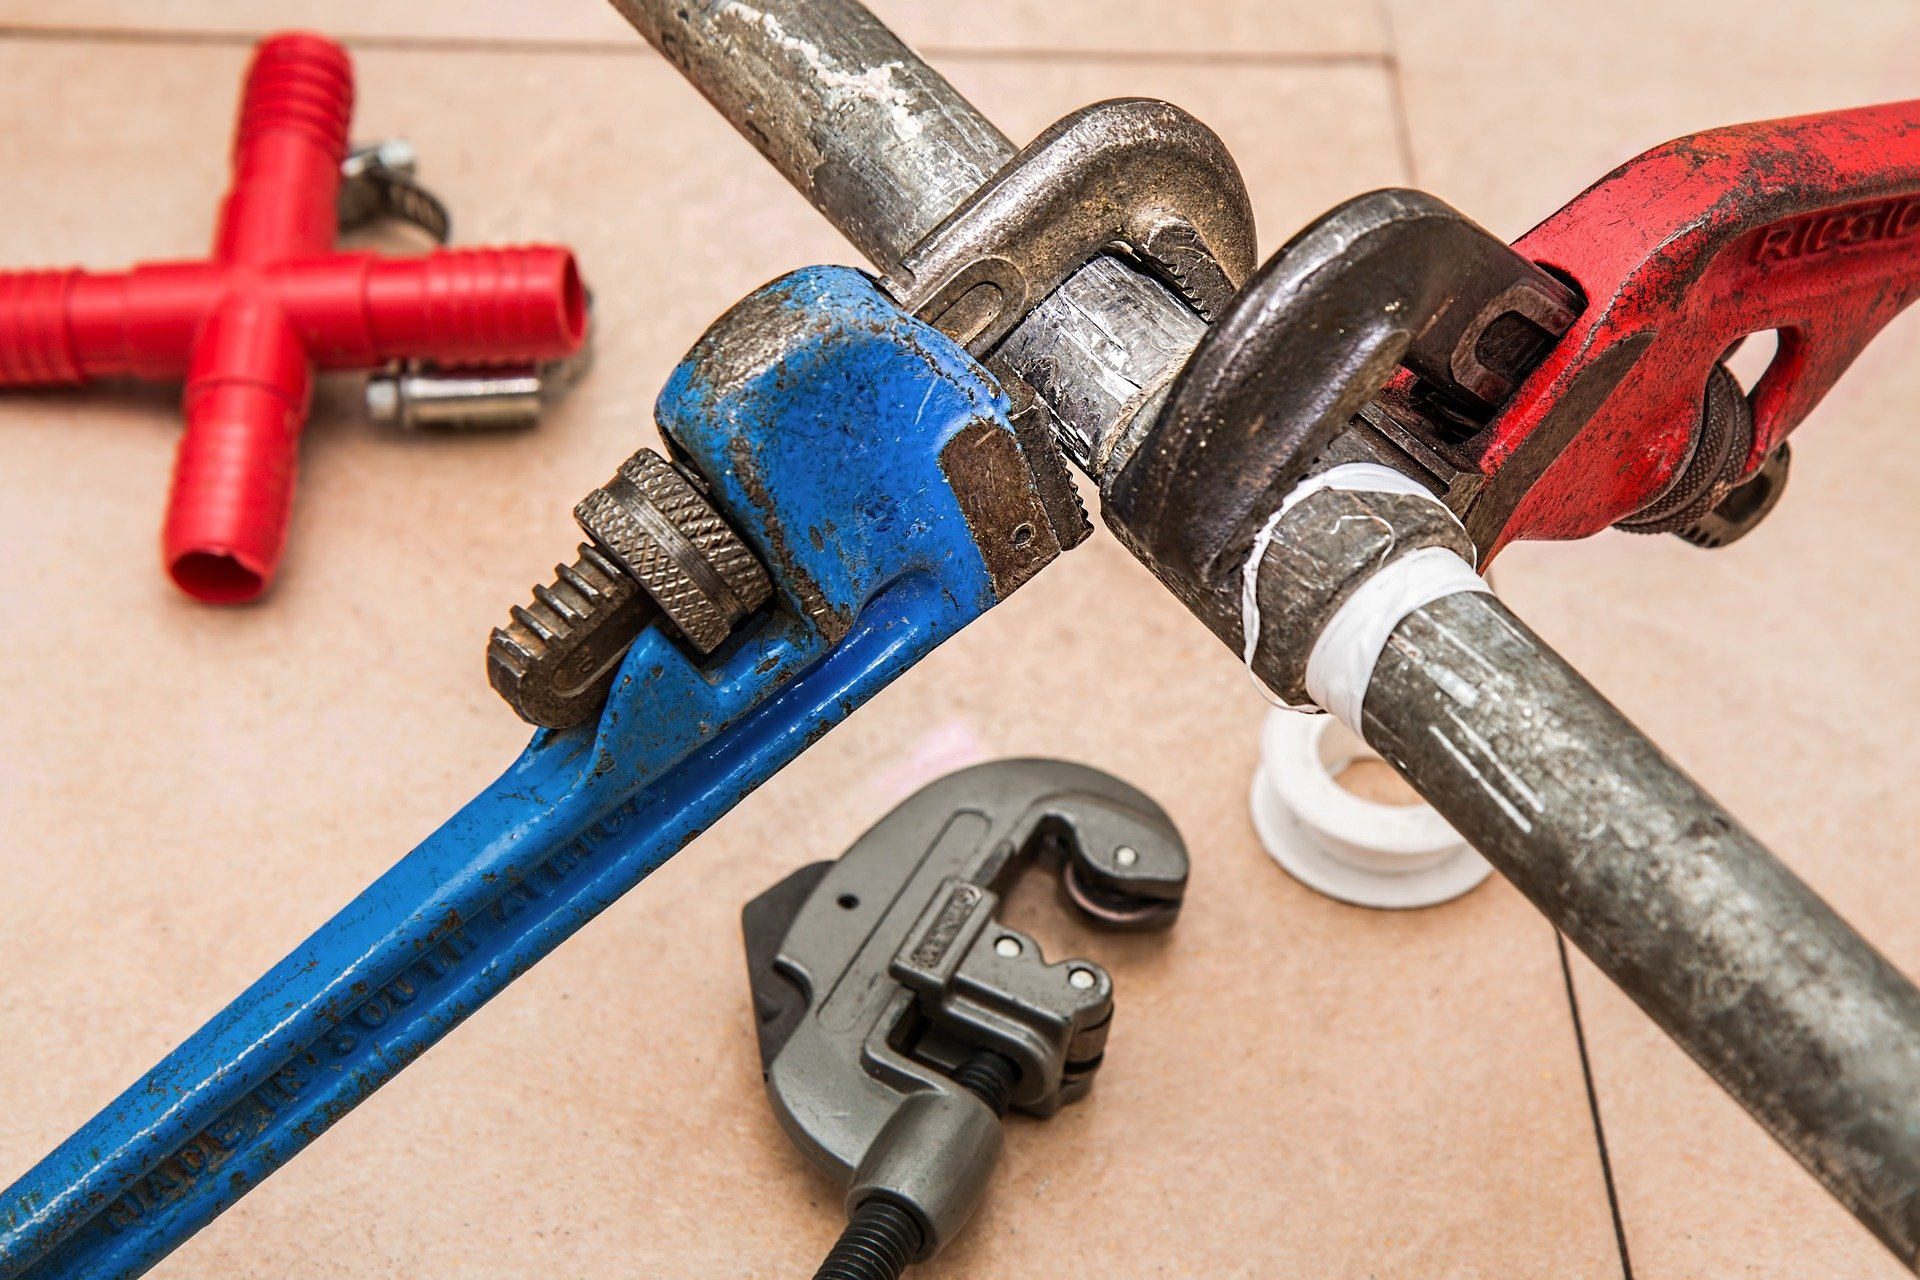 How to Find a Good Local Plumber